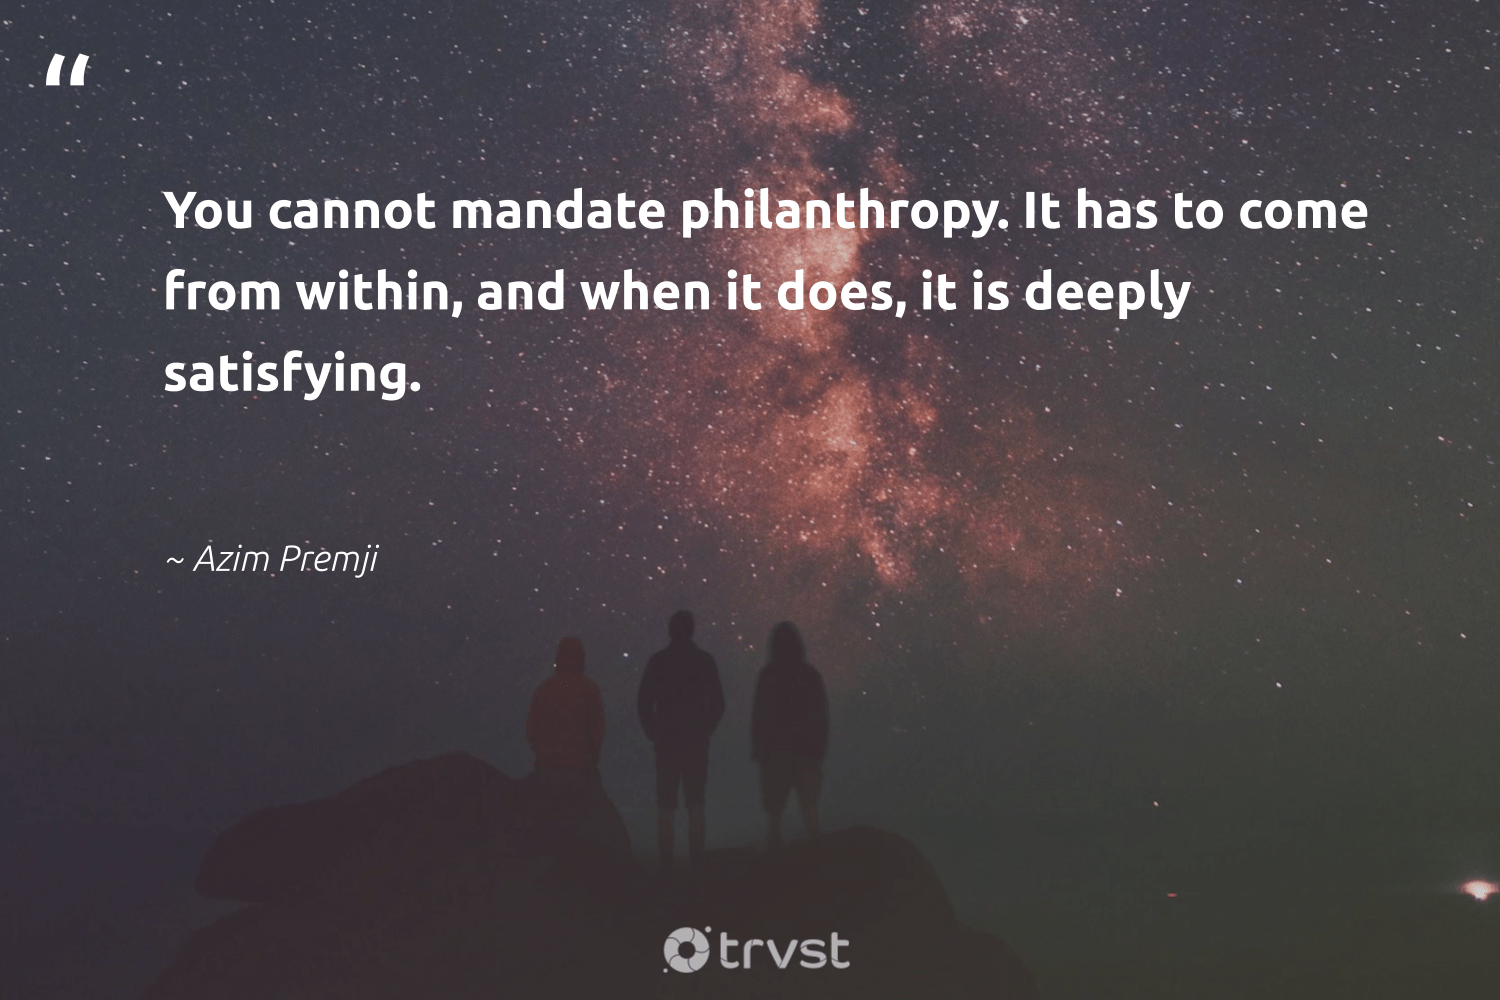 """You cannot mandate philanthropy. It has to come from within, and when it does, it is deeply satisfying.""  - Azim Premji #trvst #quotes #philanthropy #philanthropic #itscooltobekind #changemakers #dotherightthing #togetherwecan #giveforthefuture #socialimpact #collectiveaction #beinspired"